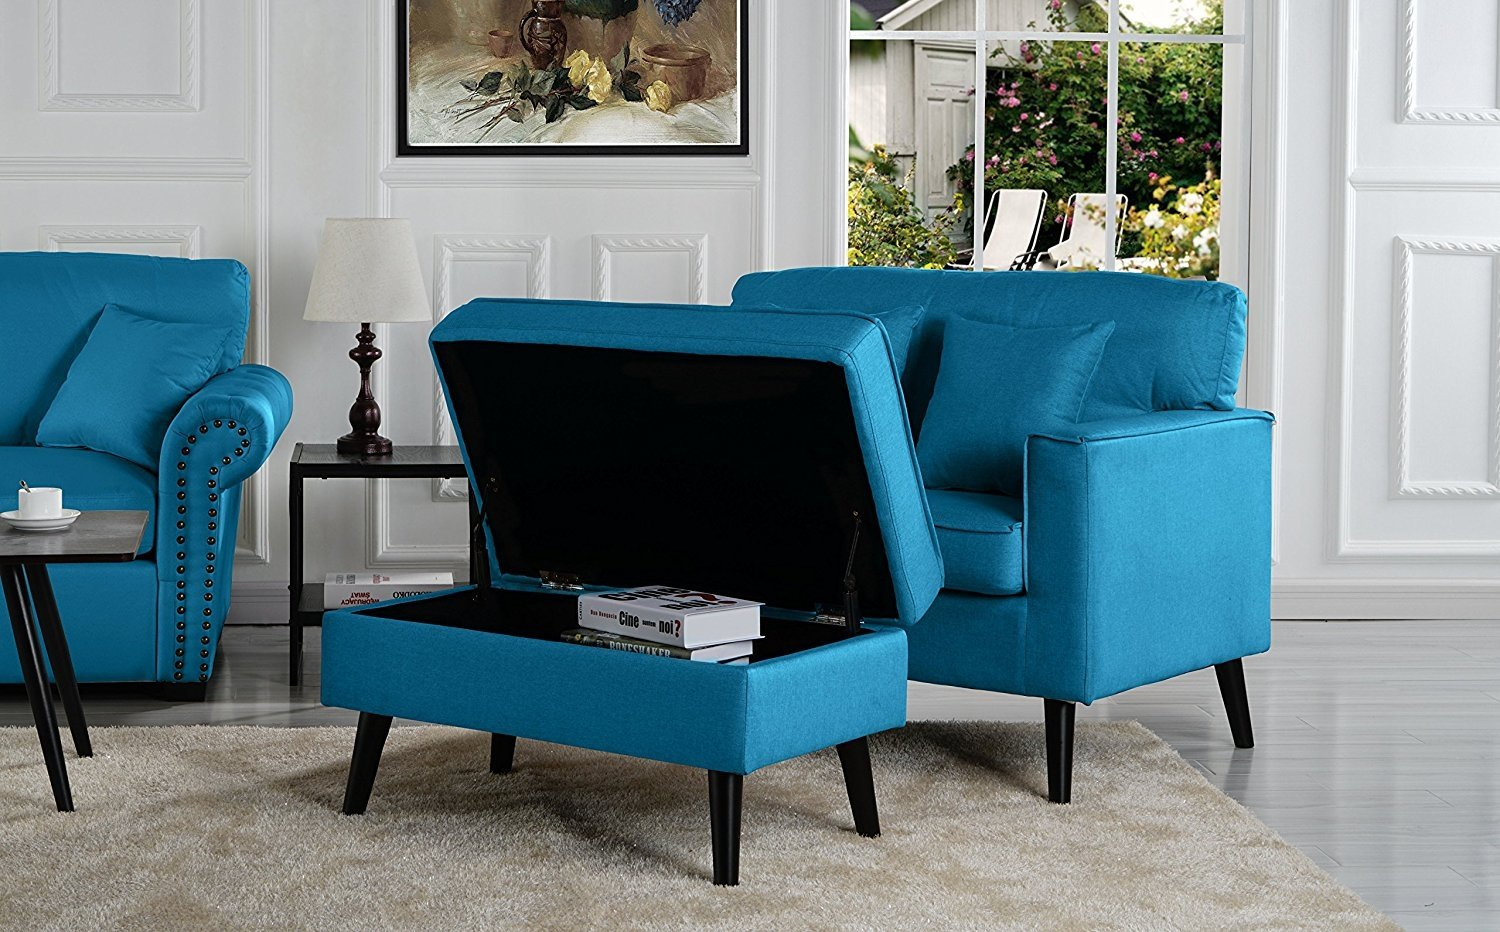 Details About Mid Century Modern Living Room Large Accent Chair W Storage Ottoman Sky Blue